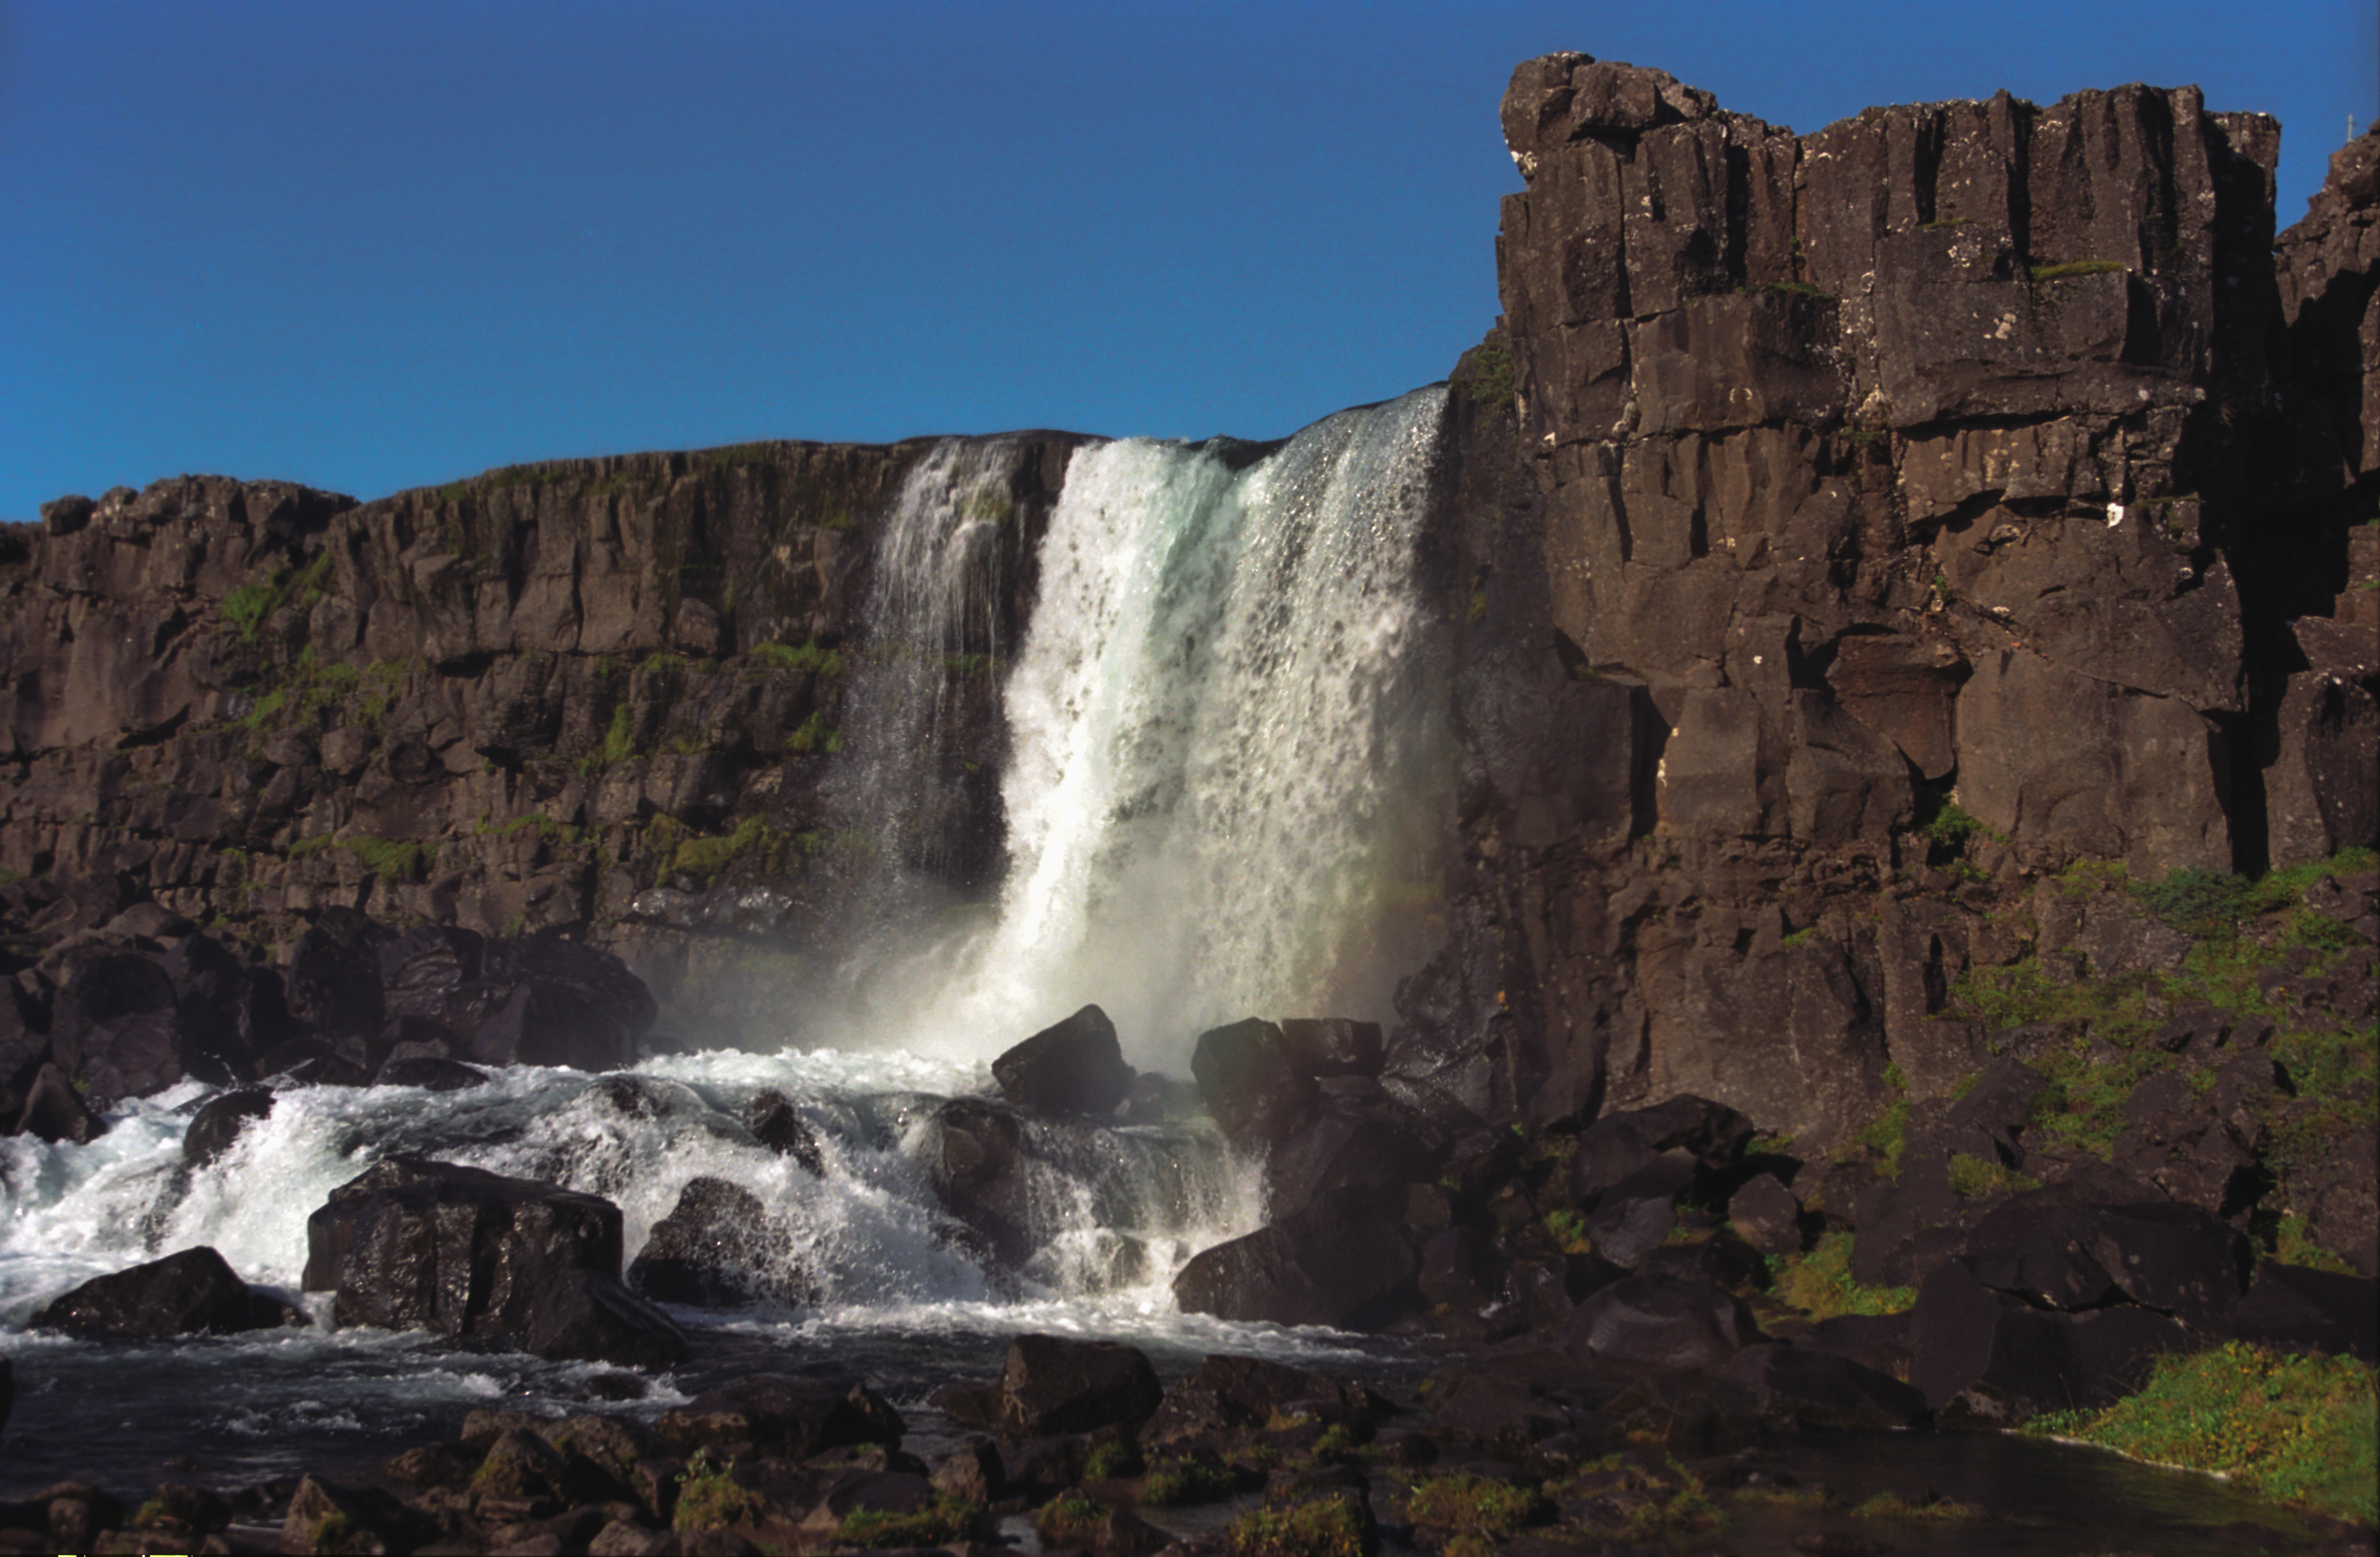 Wondrous Waterfalls in Iceland [60 PICS]